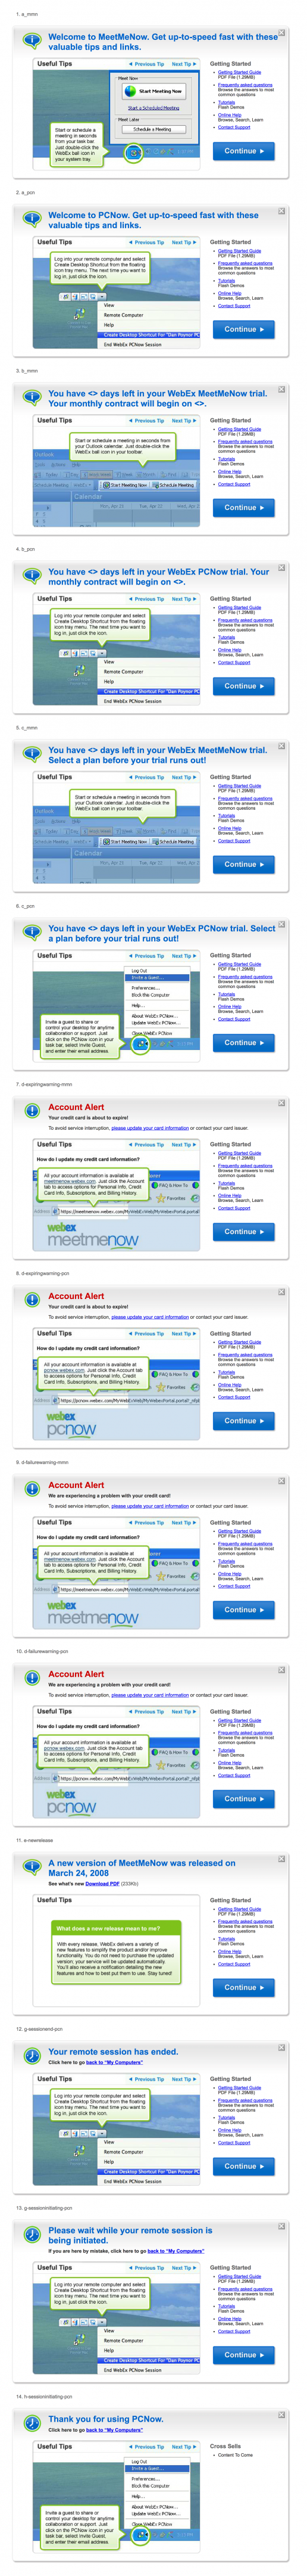 cisco-webex-meetmenow-and-pcnow-useful-tips-dialogs